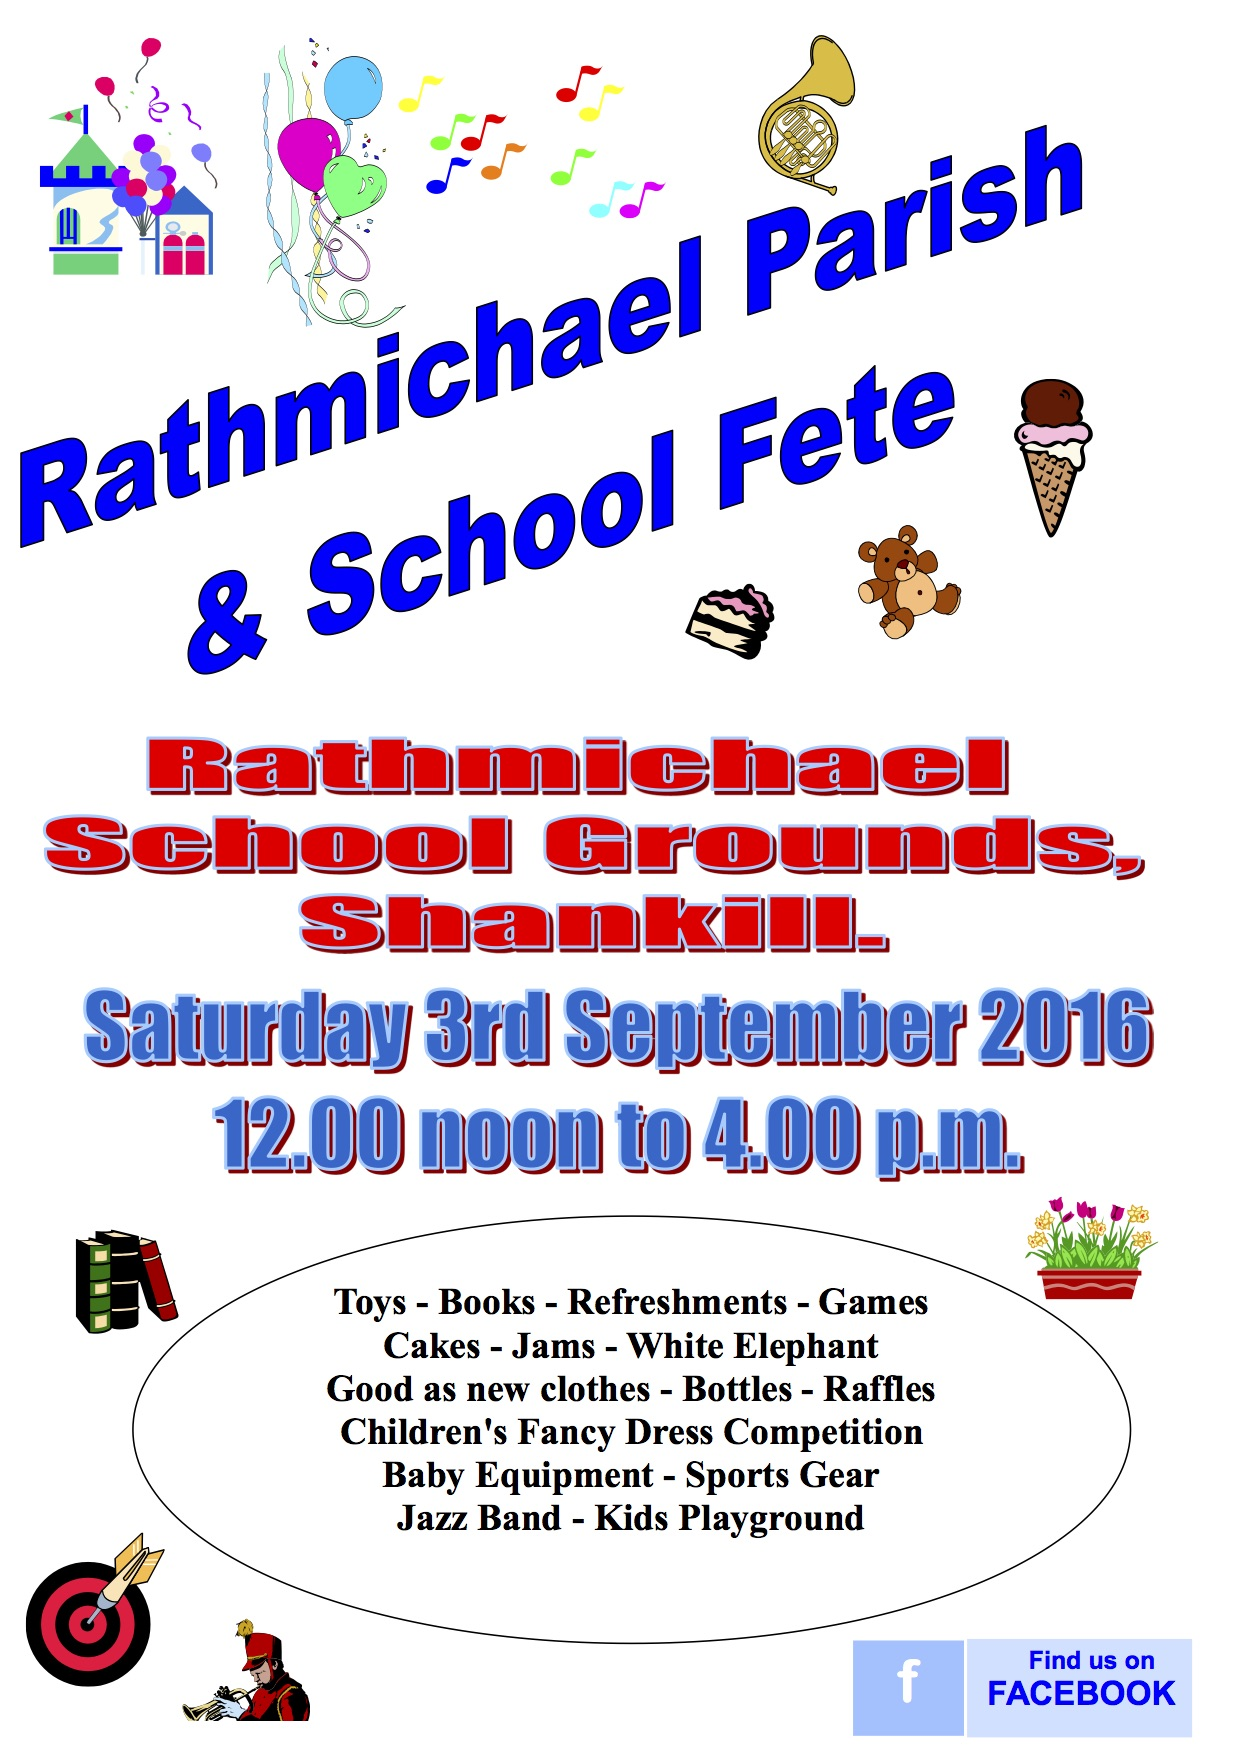 Rathmichael Parish & School Fete